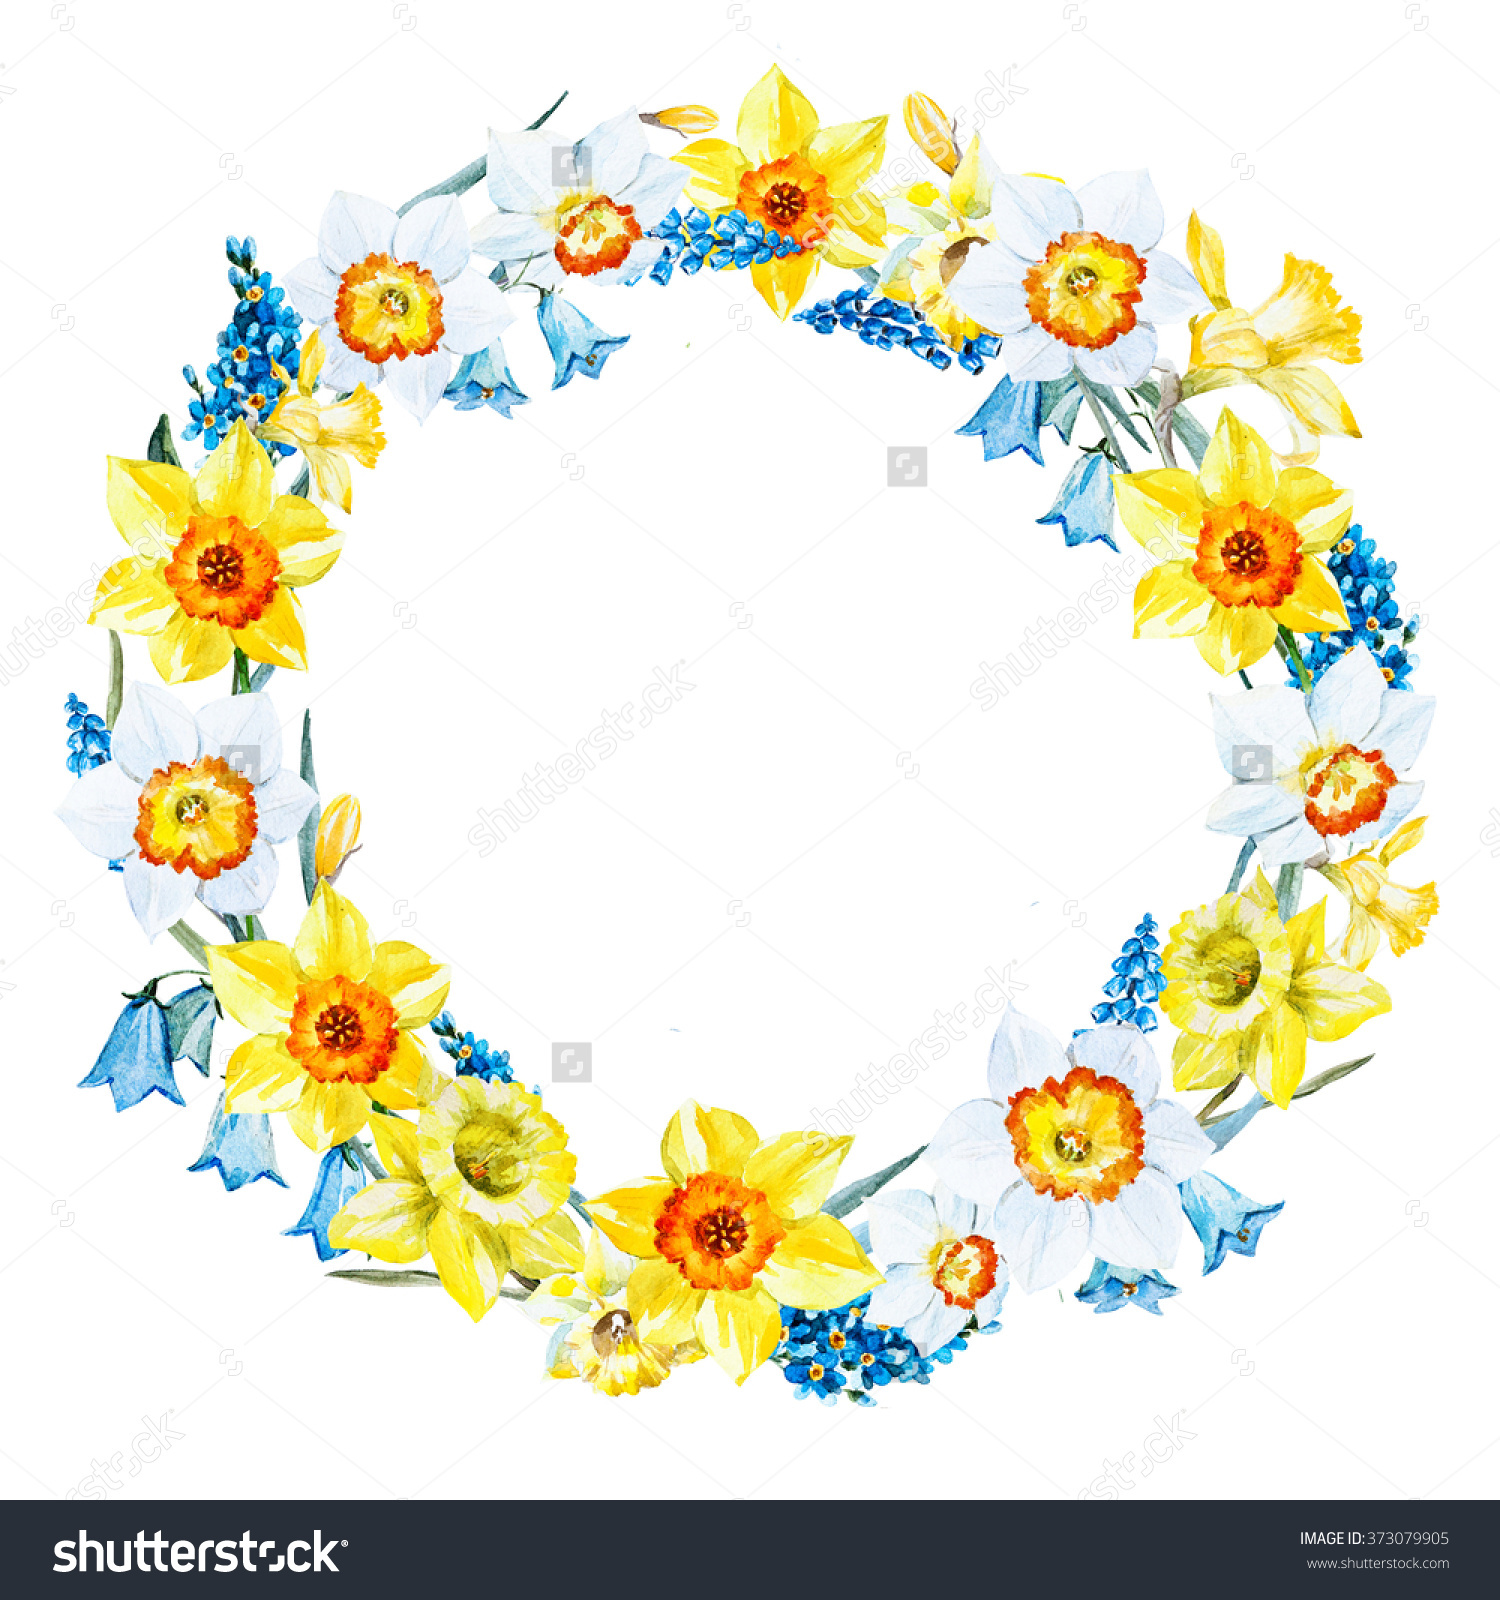 Yellow Flower clipart garland Watercolor on Art Find 373079905/stock